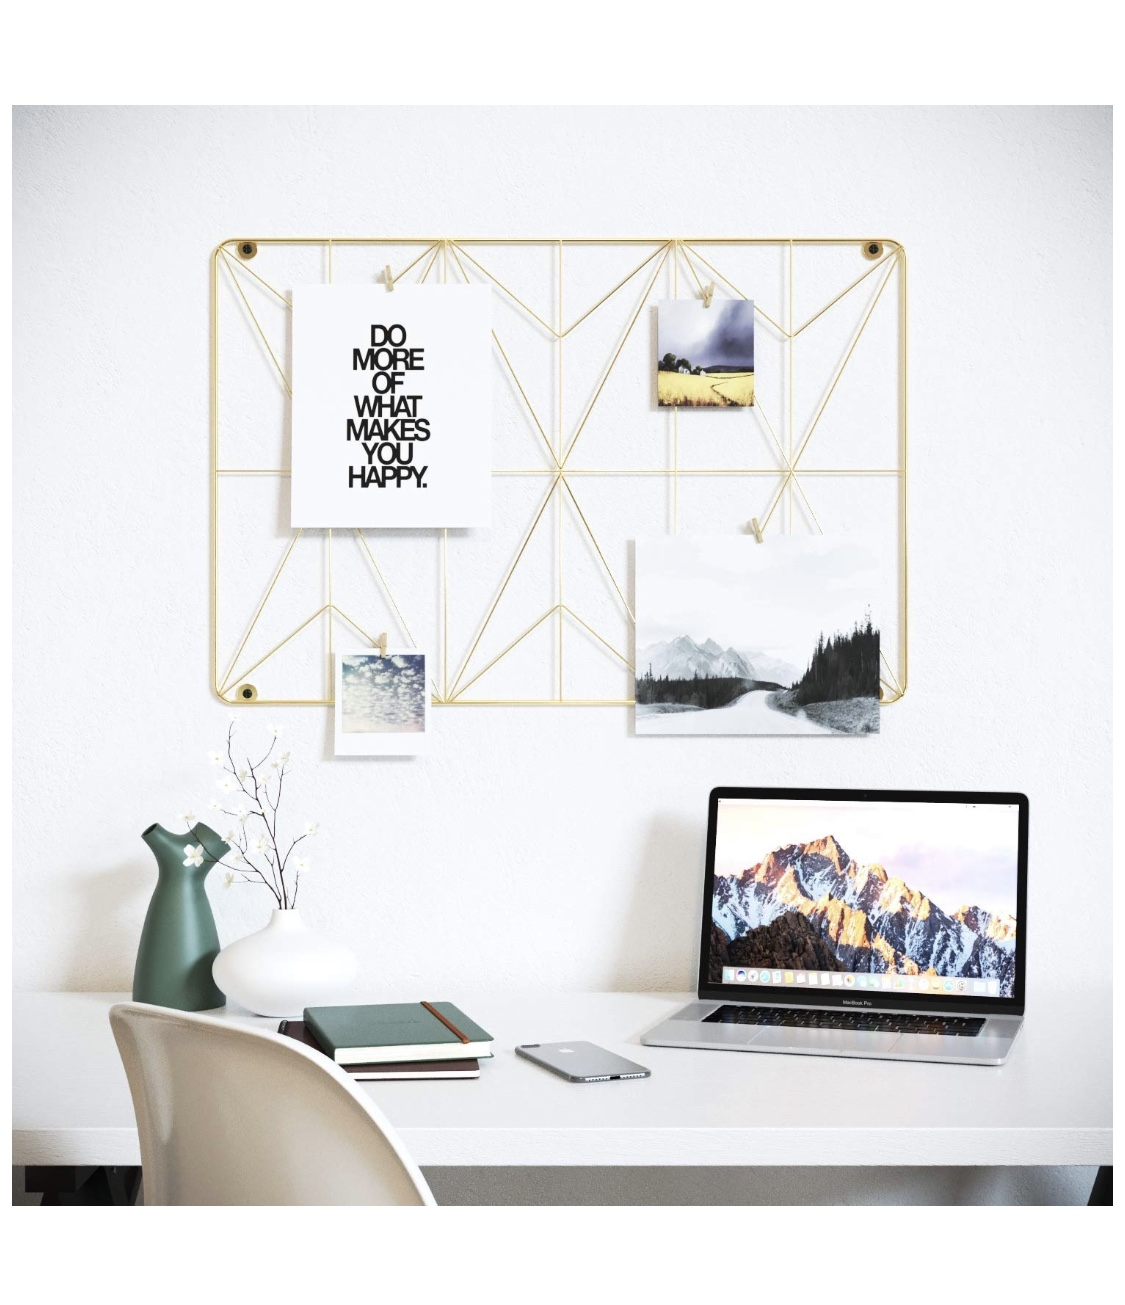 Cevillo Stylish Wire Metal Wall Grid Panel – Perfect as Photo Frame, Office Organization – Gold Multi-Functional Wall Storage Display (Gold   Rectangle)